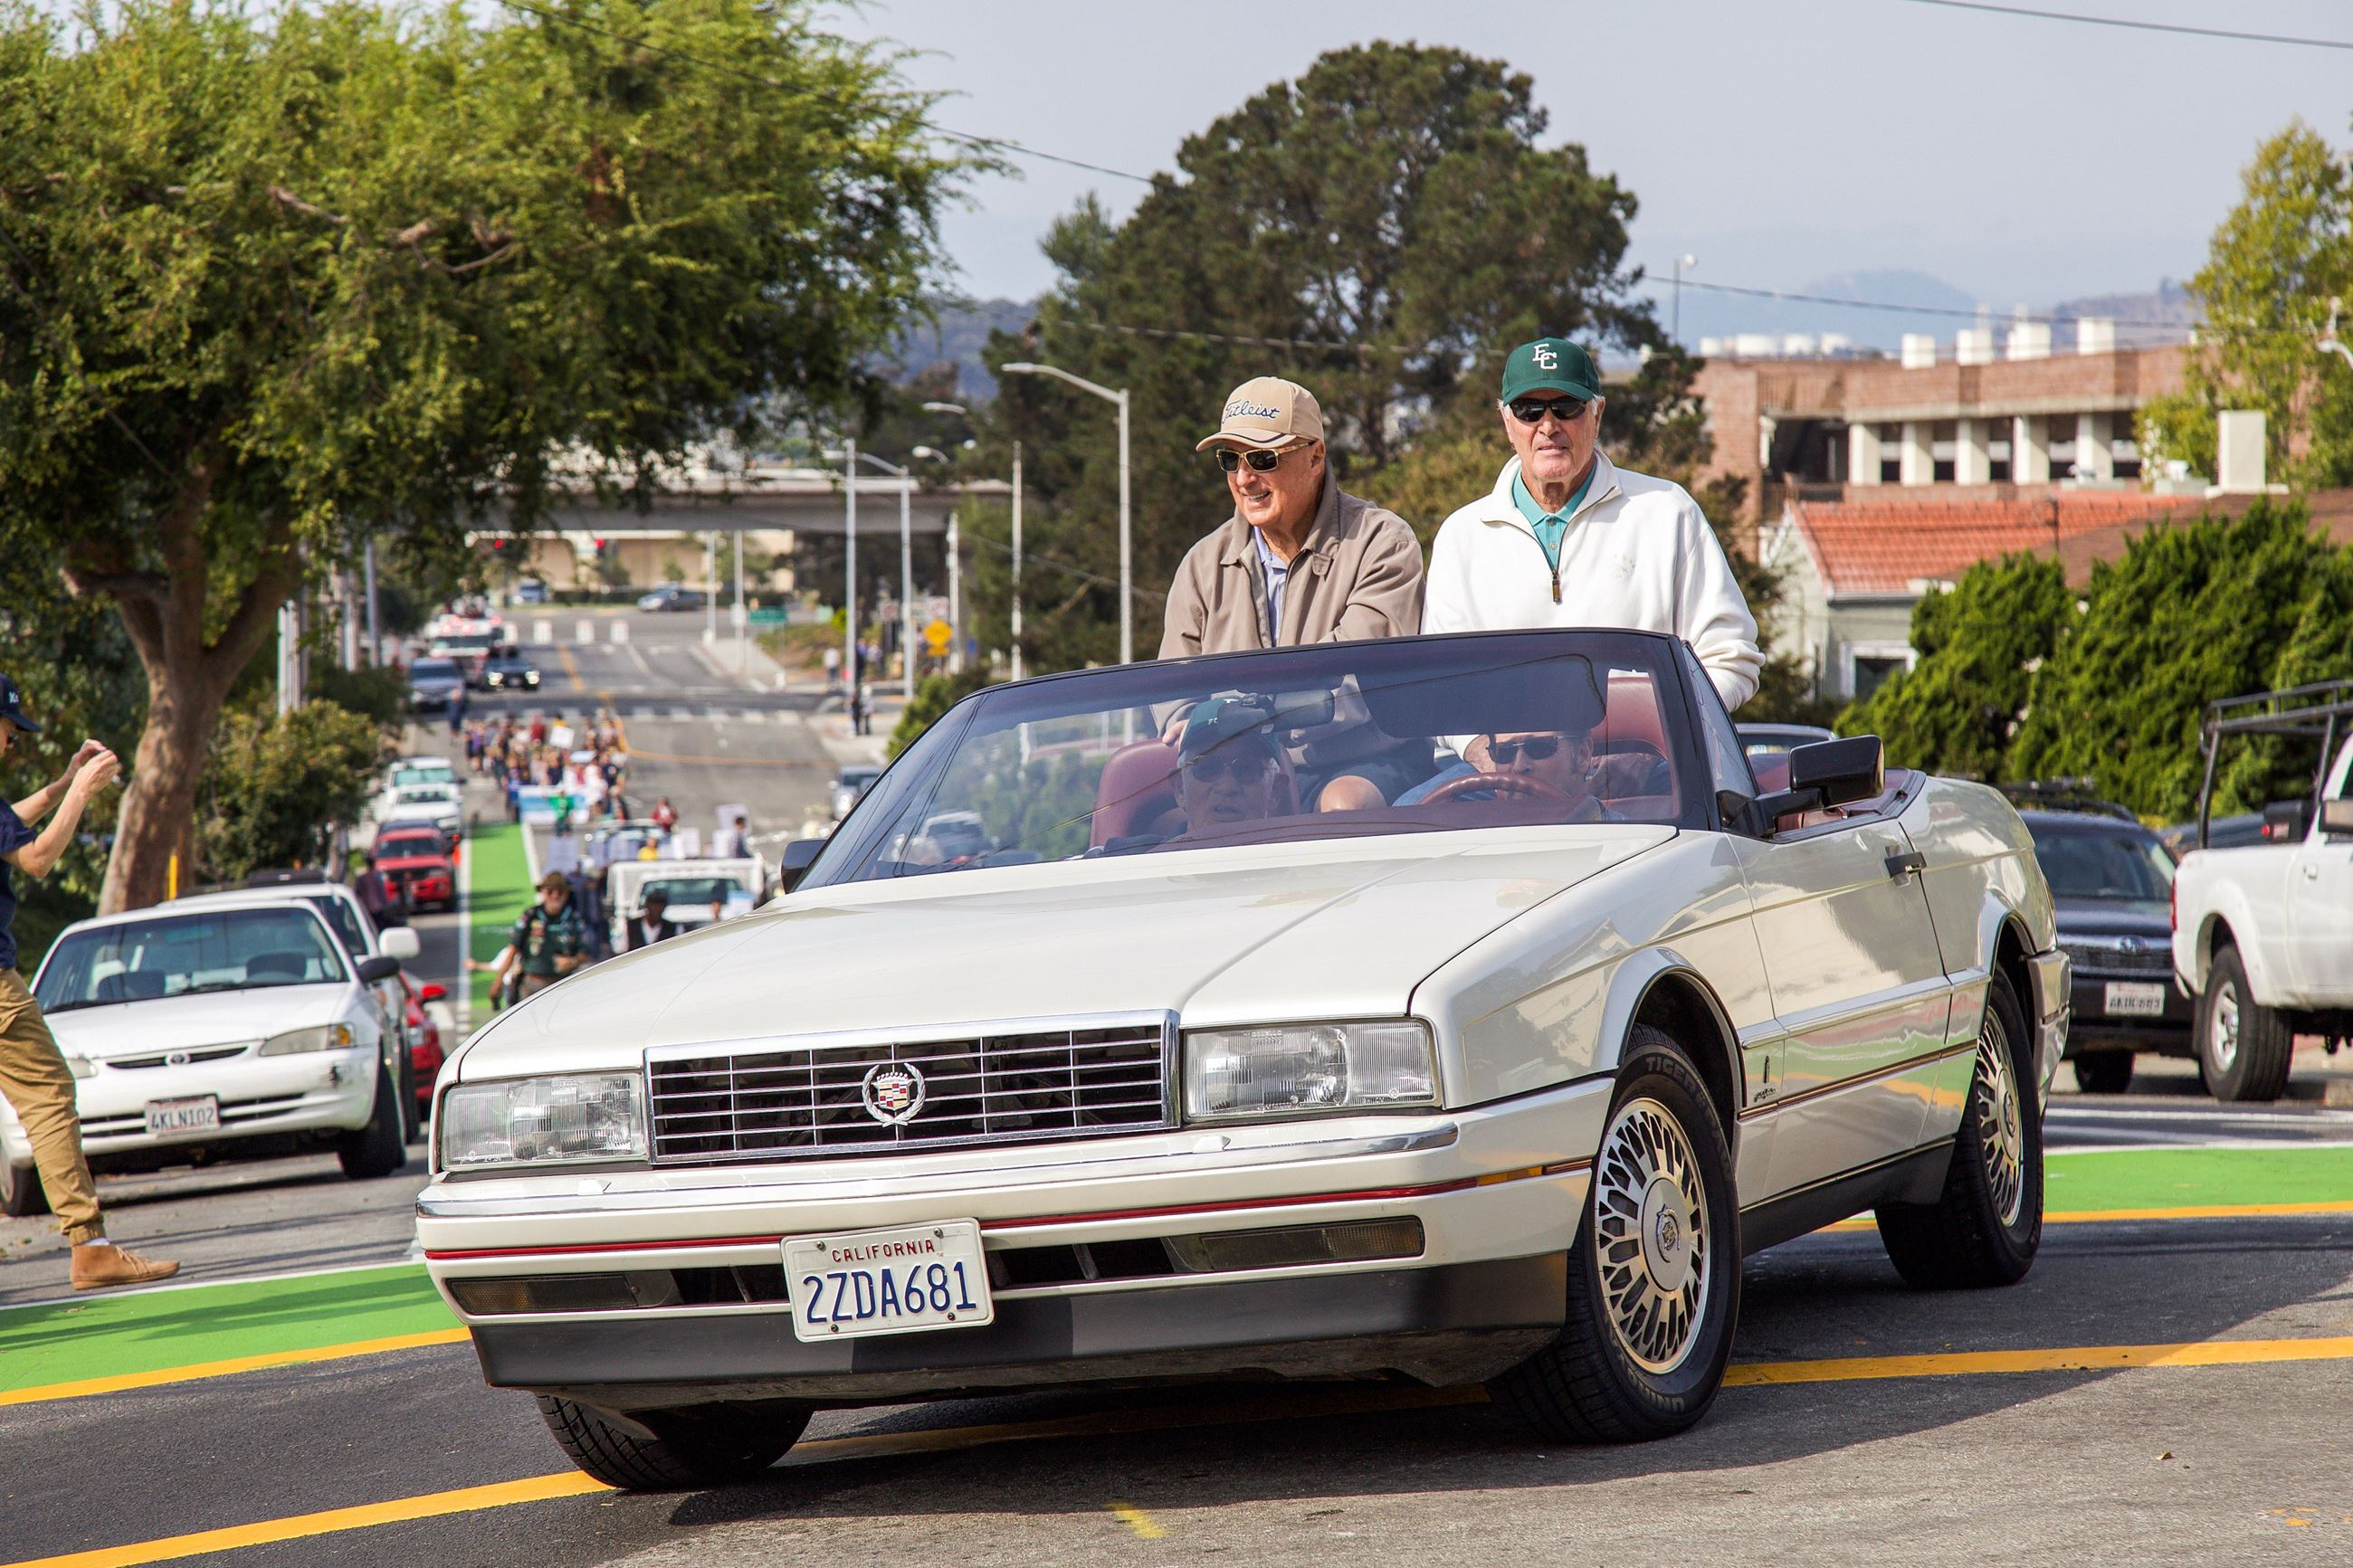 240 Notable coaches in the Parade - Photo by Marin Stuart